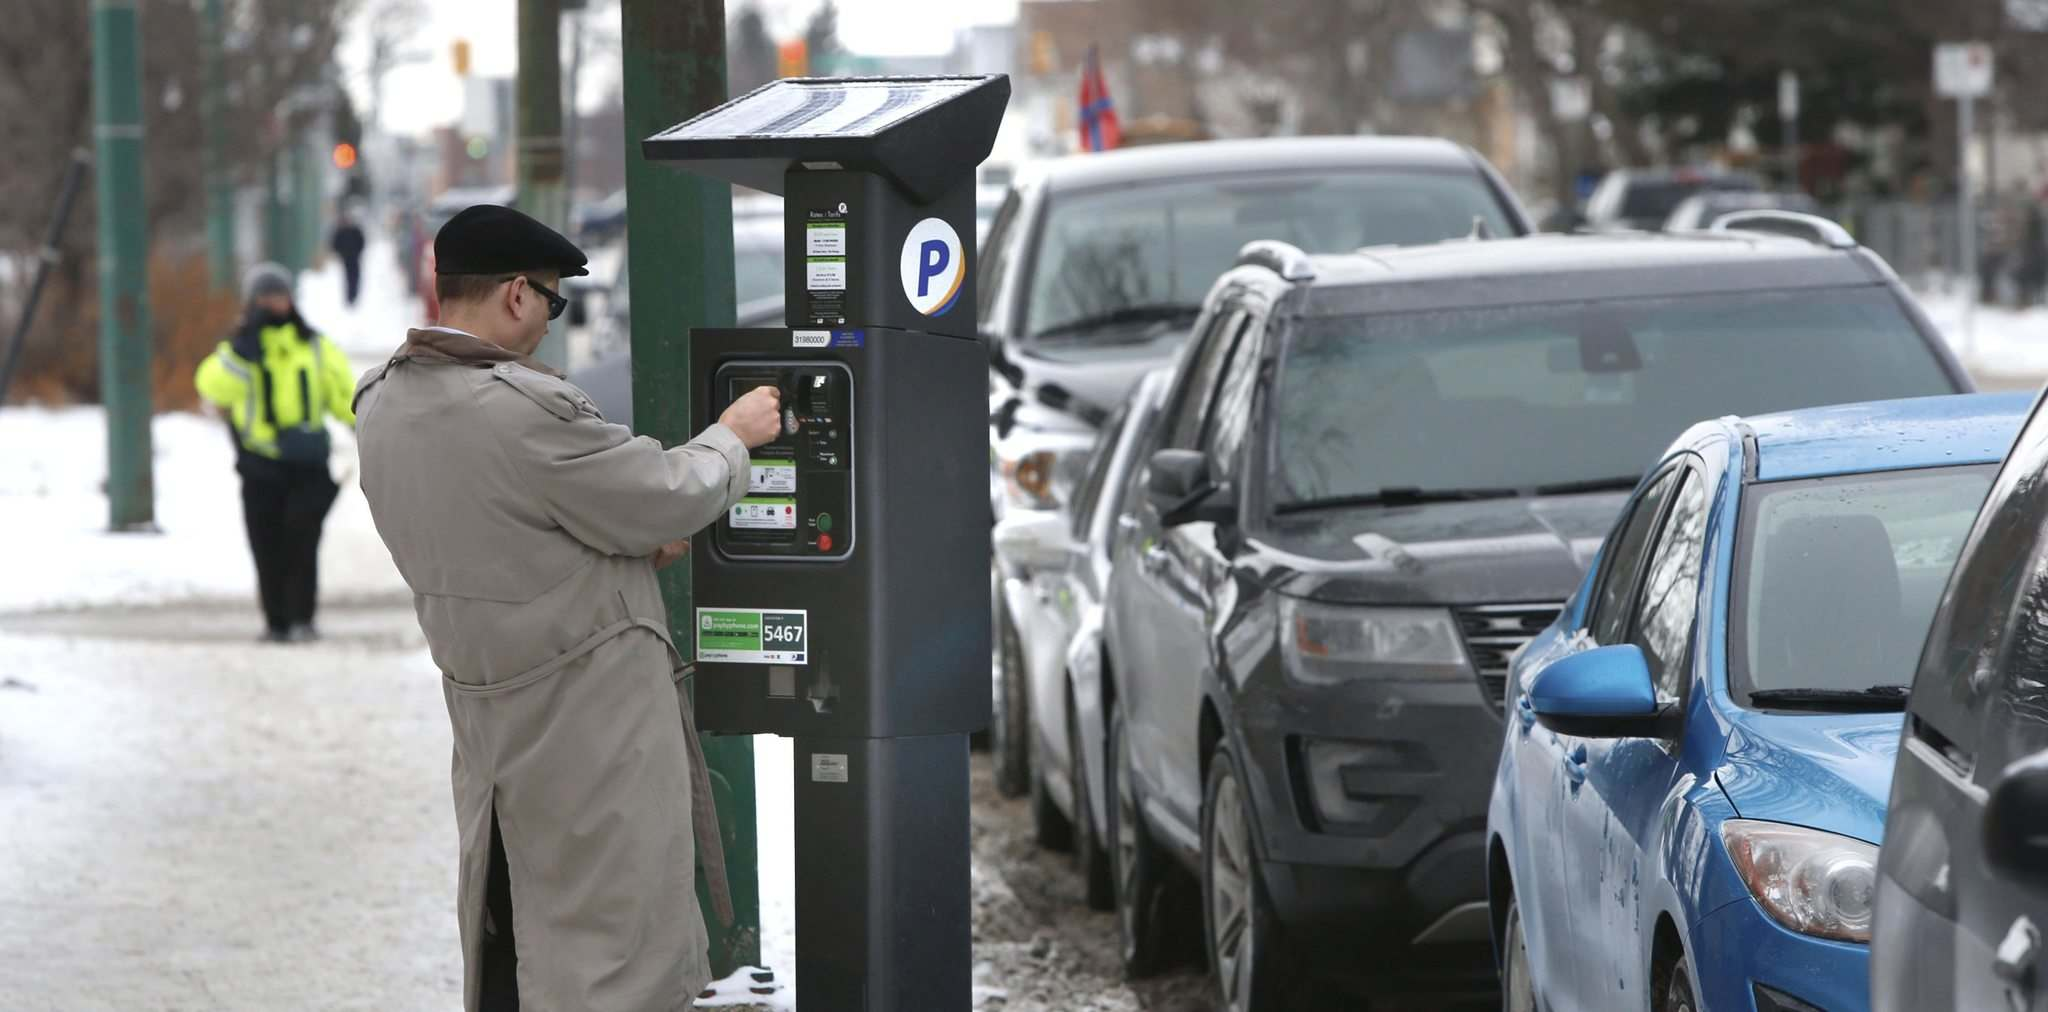 WAYNE GLOWACKI / WINNIPEG FREE PRESS FILES</p><p>Despite stickers on downtown parking meters informing motorists parking is free for two hours on Saturdays, people have been finding tickets on their windshields if they didn&#39;t plug the meter. </p></p>